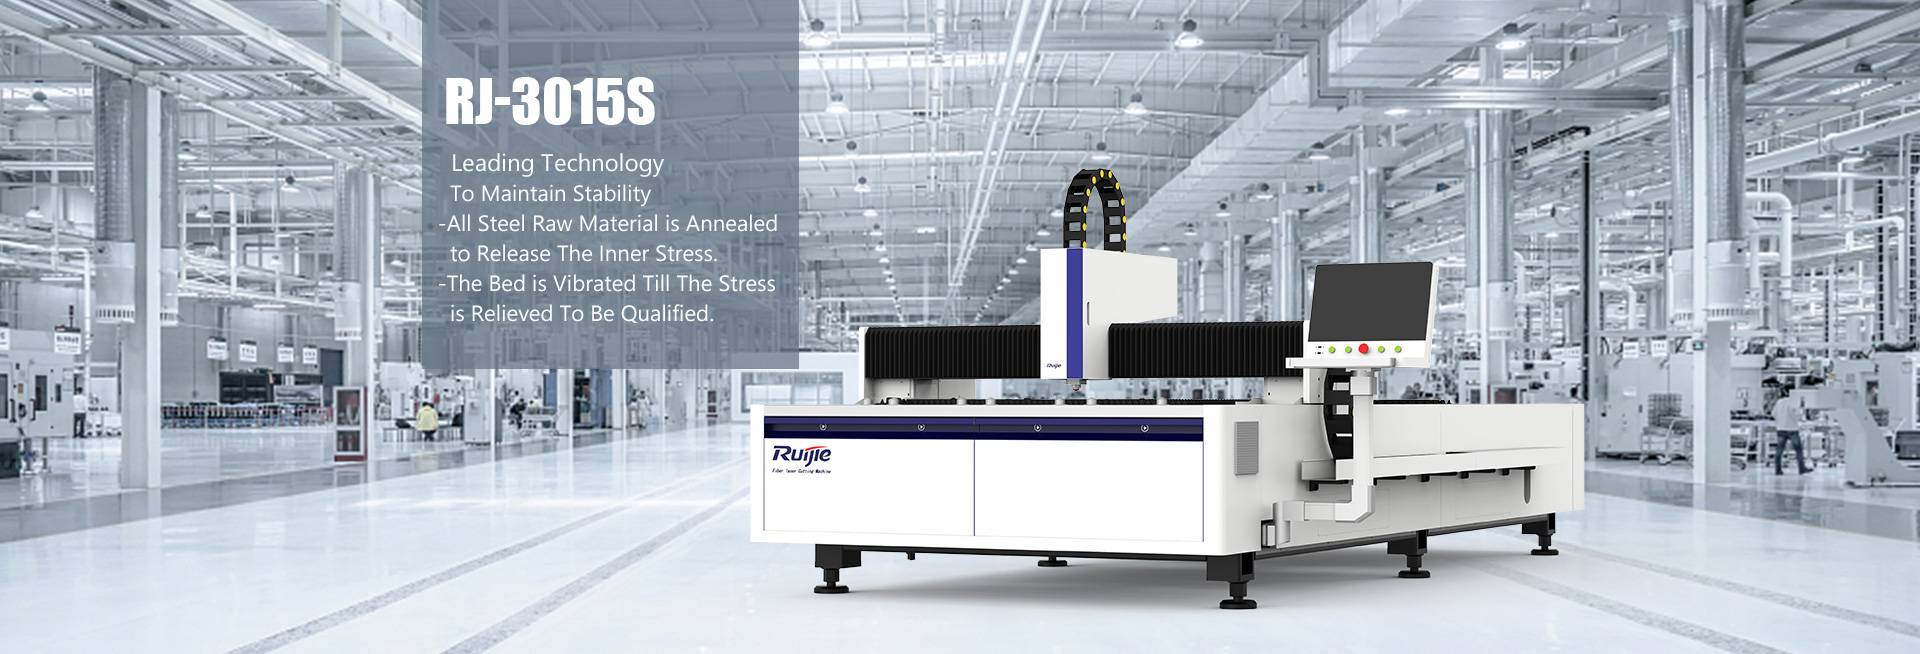 3015S Fiber Laser Cutting Machine